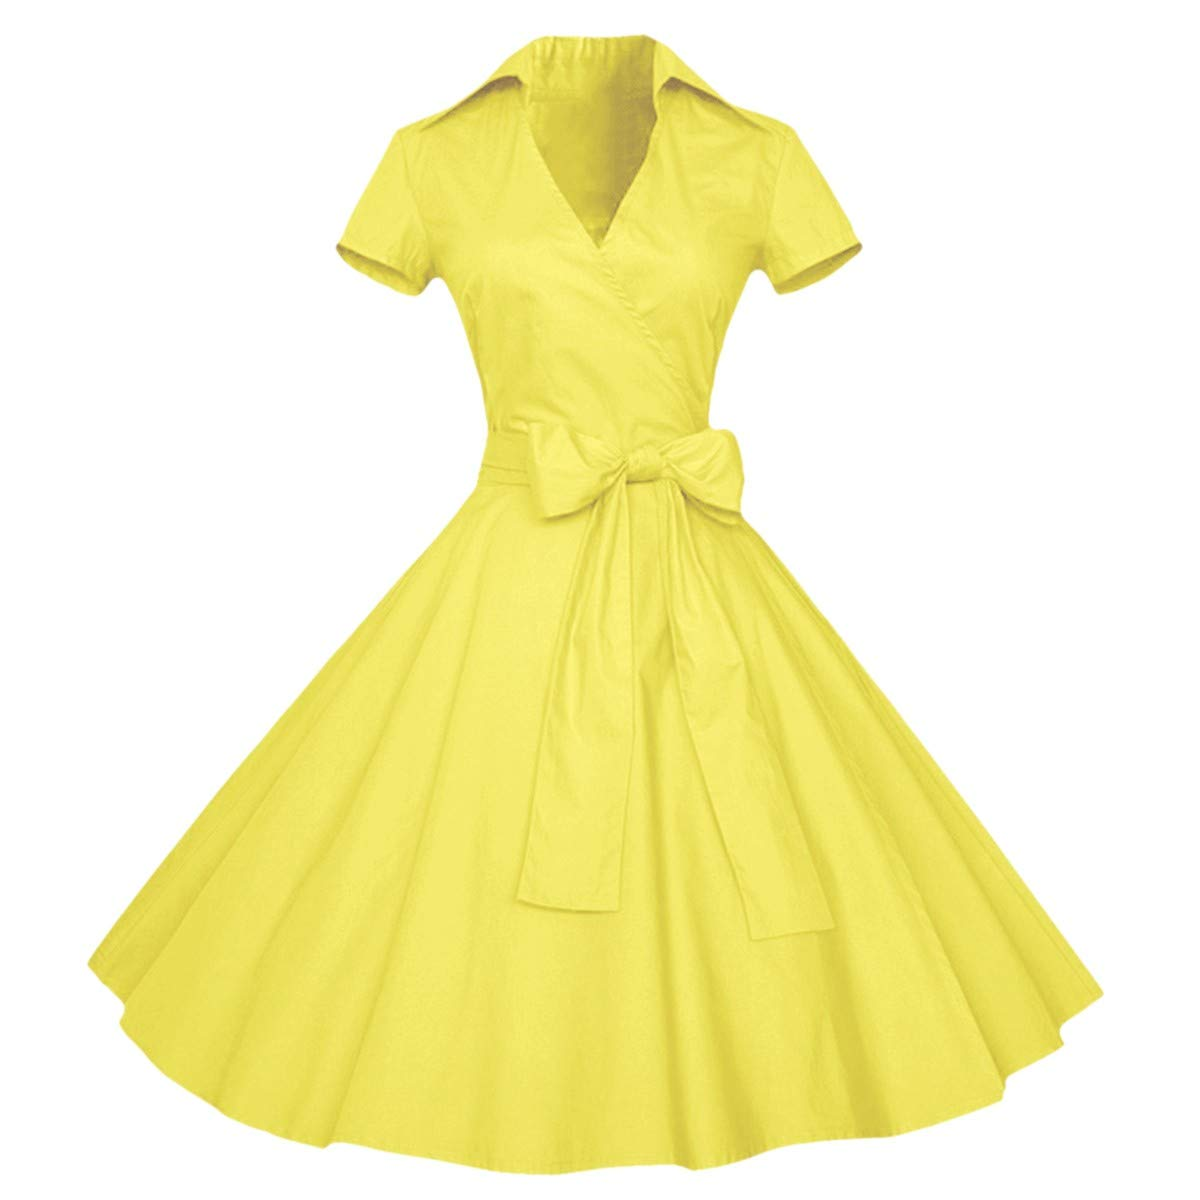 Samtree Womens Polka Dot Dresses,50s Style Short Sleeves Rockabilly Vintage Dress(M(US 4-6),Yellow)